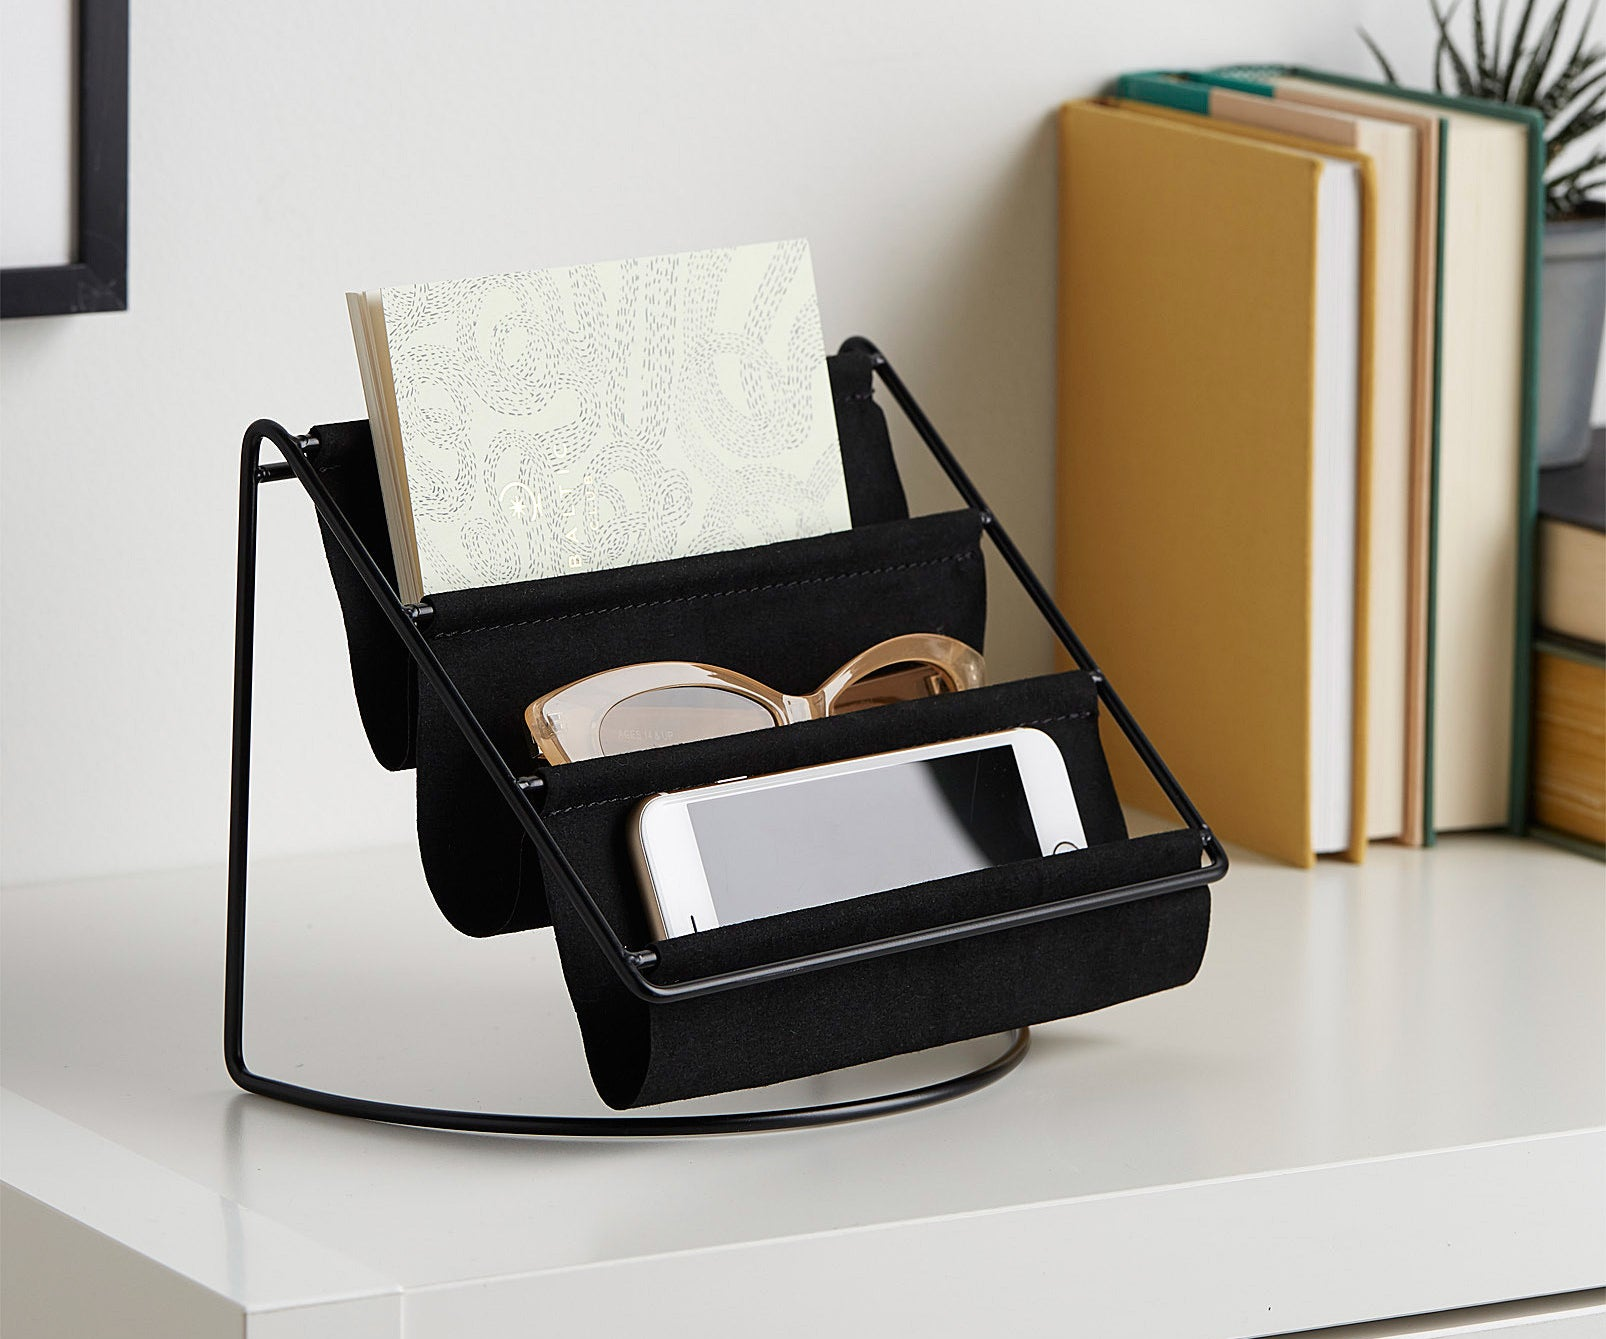 A three-tiered rack with a metal frame and cloth shelves There is a phone in one, a pair of sunglasses in another, and a small notepad in the top one.